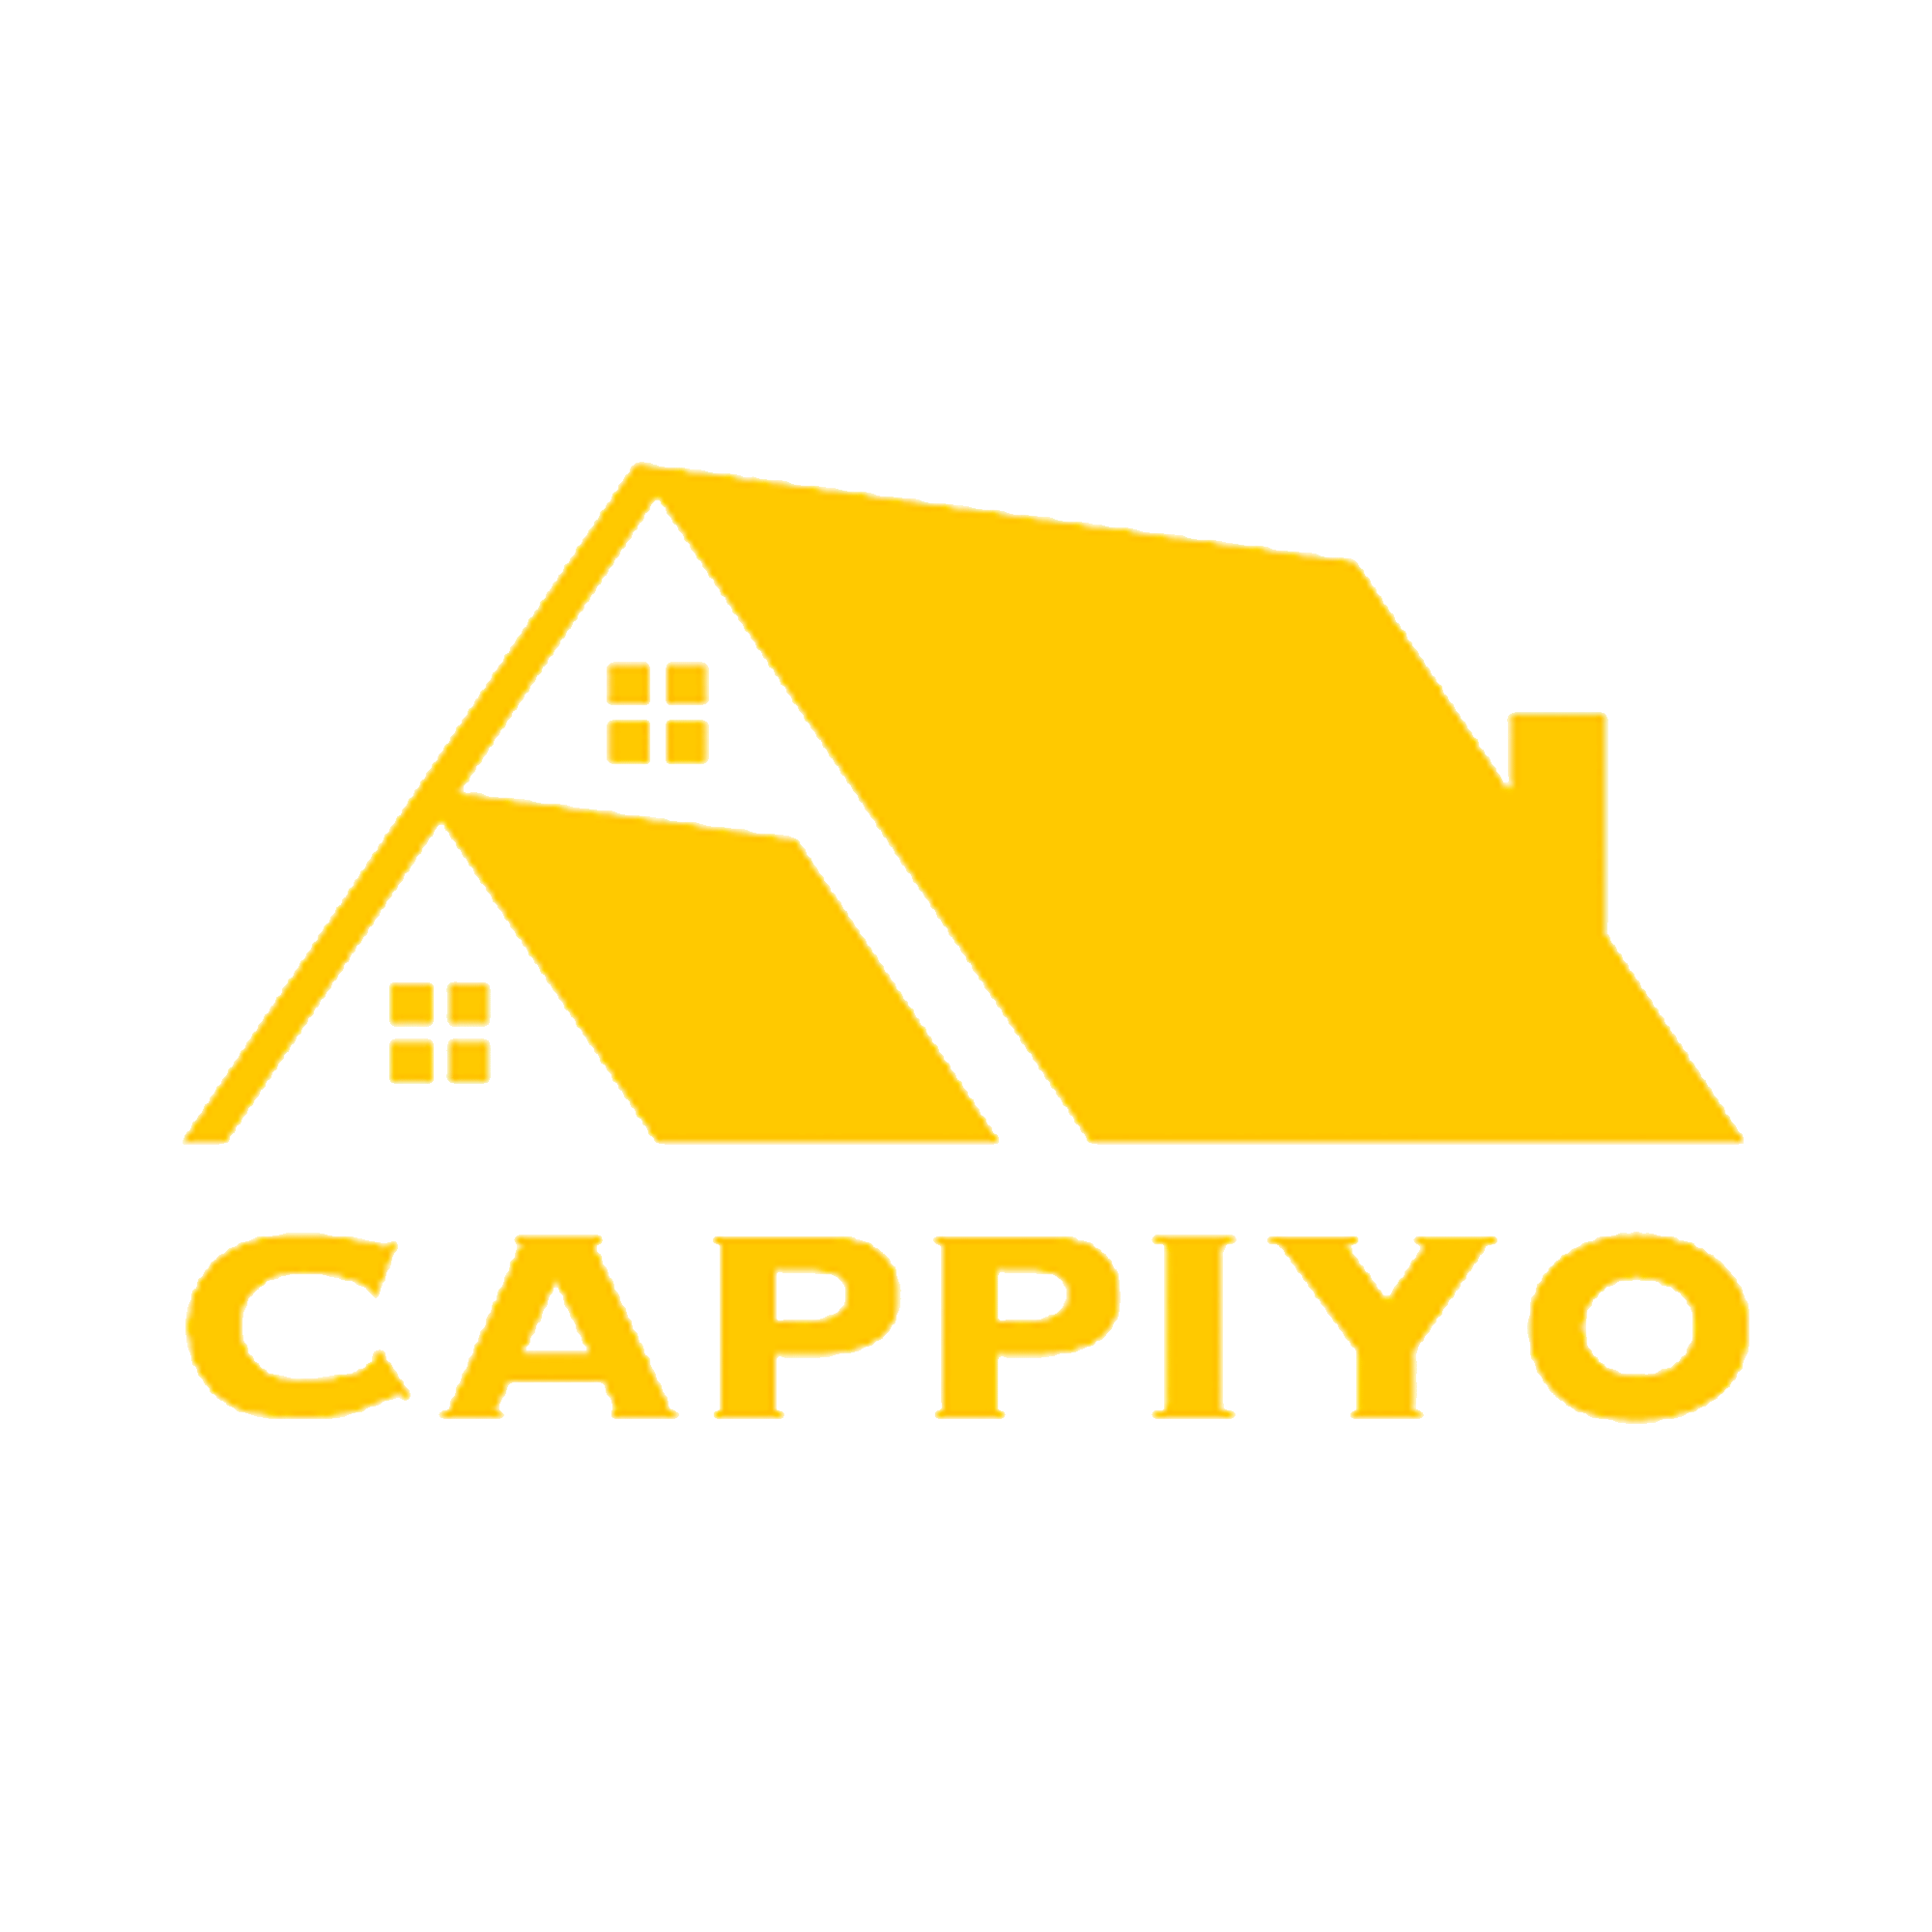 Cappiyo Construction